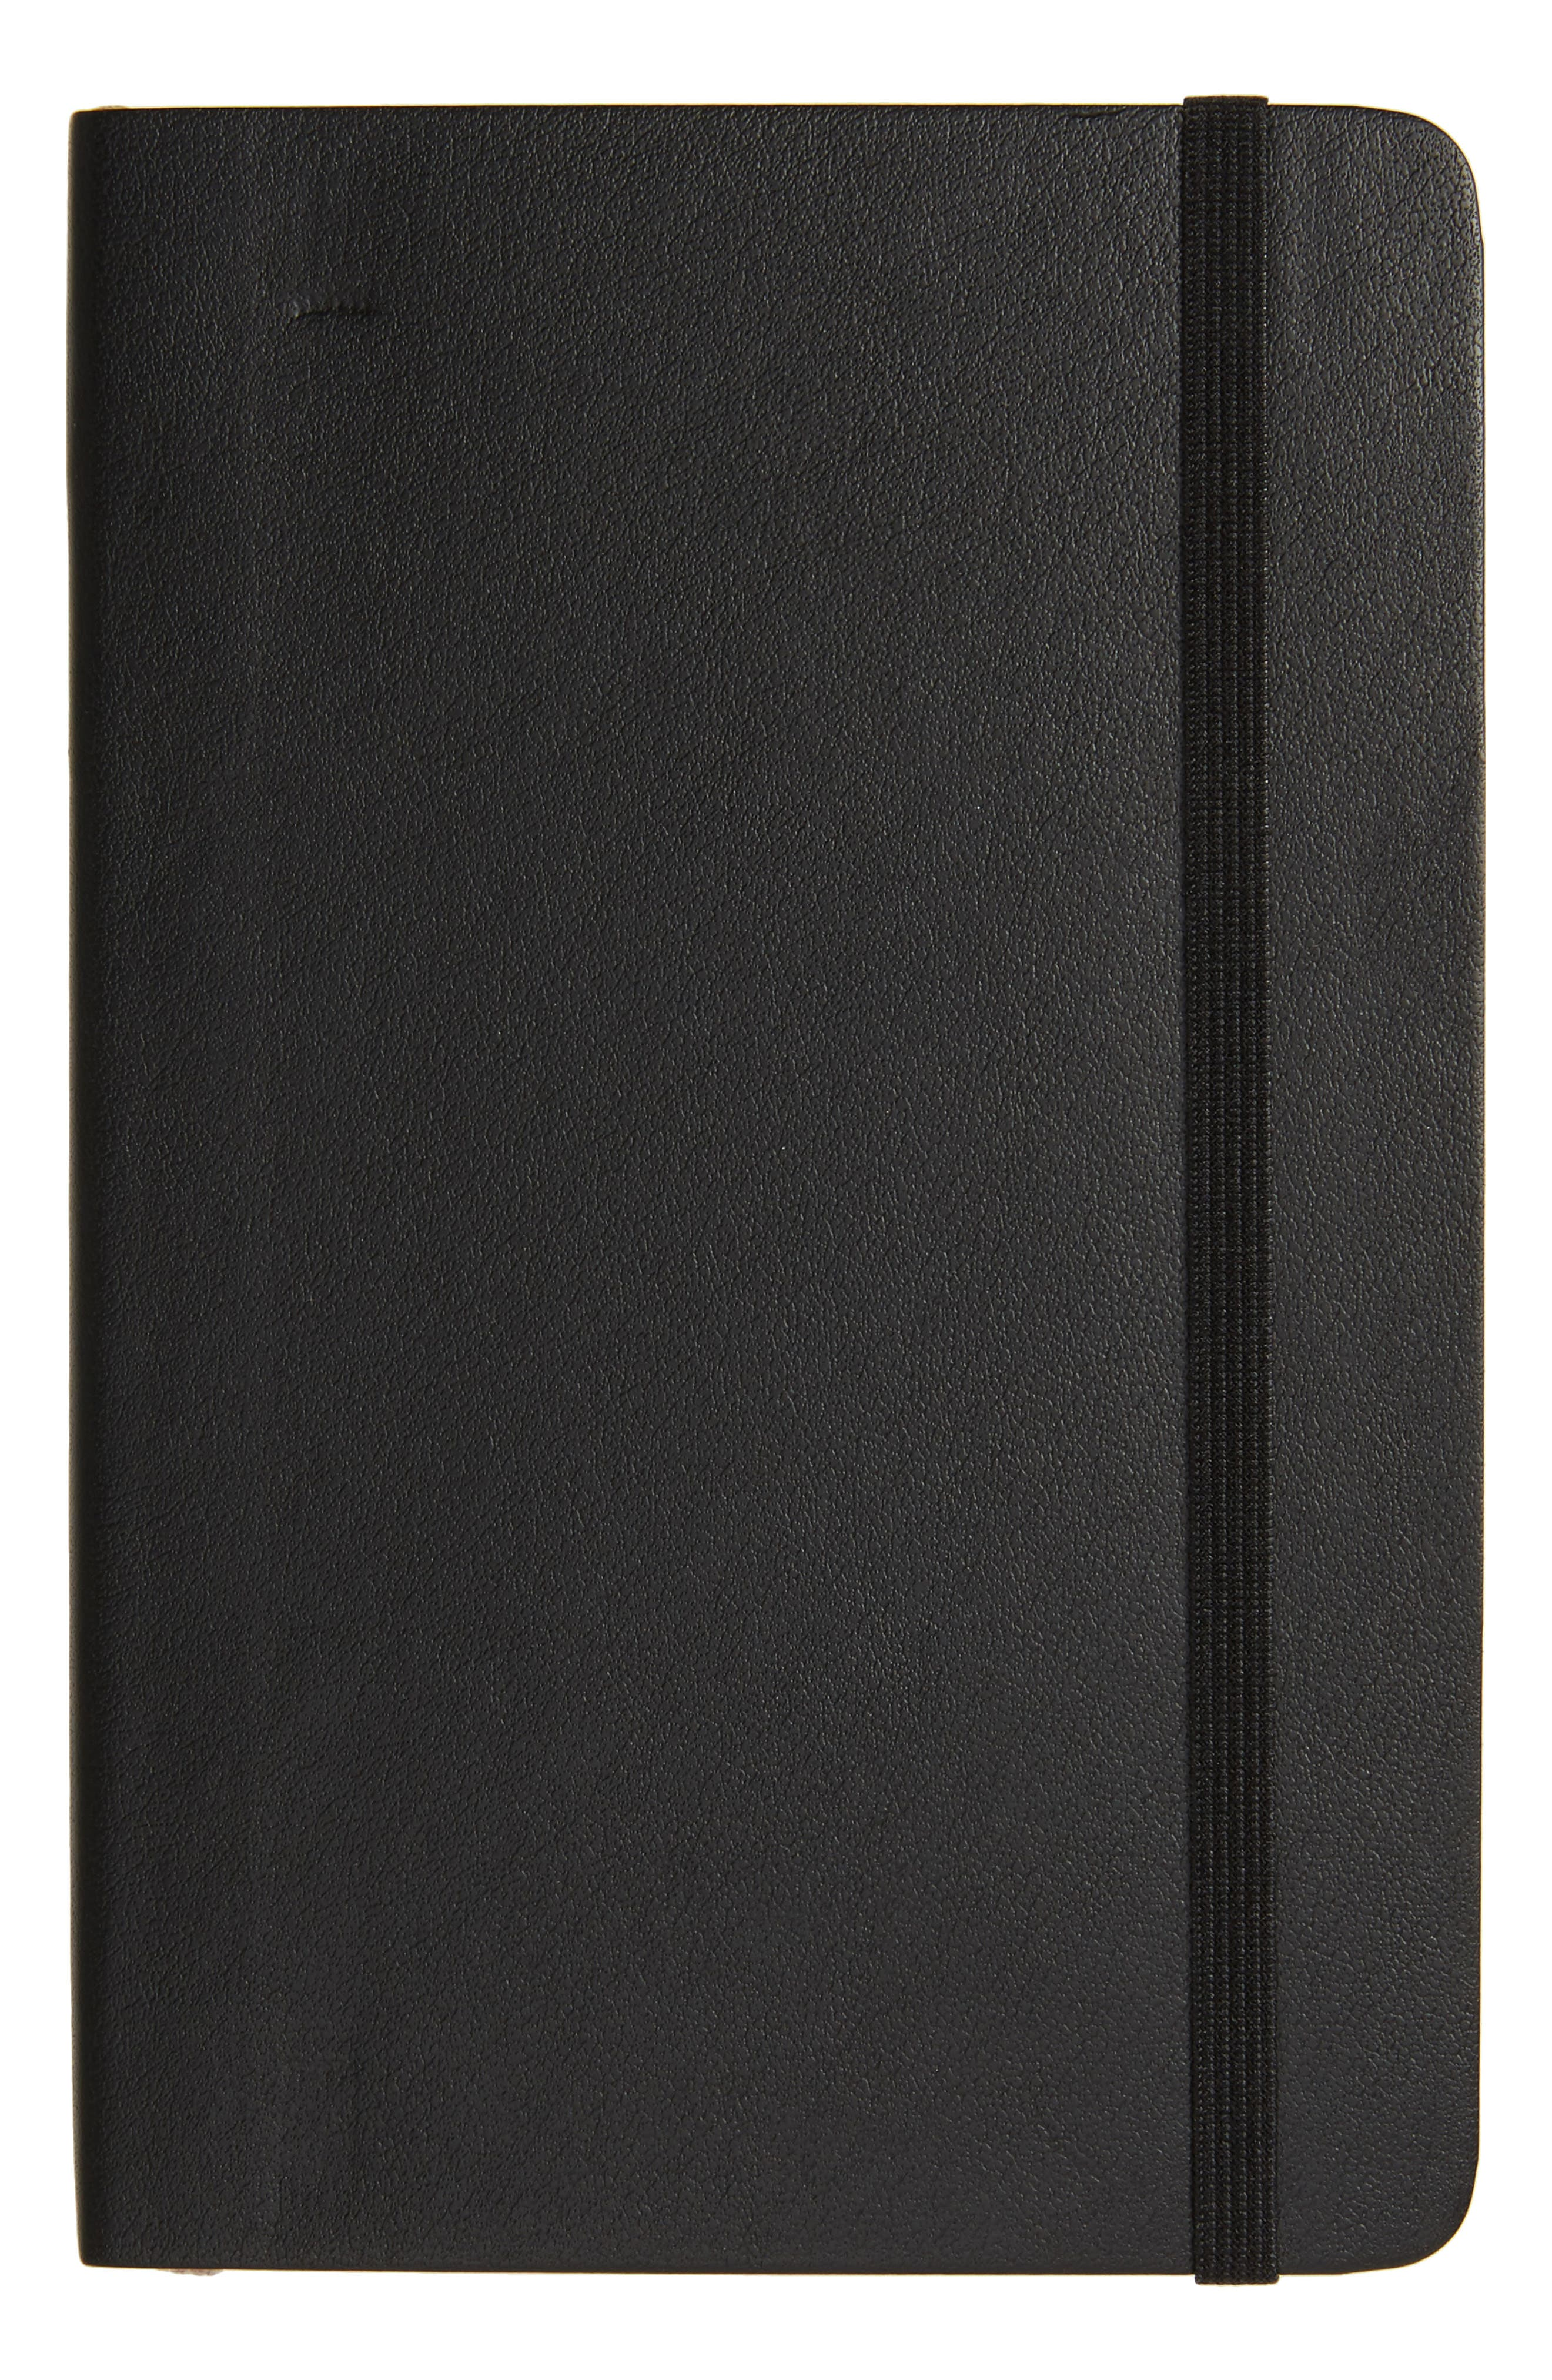 Alternate Image 1 Selected - Moleskine Classic Pocket Soft Cover Notebook